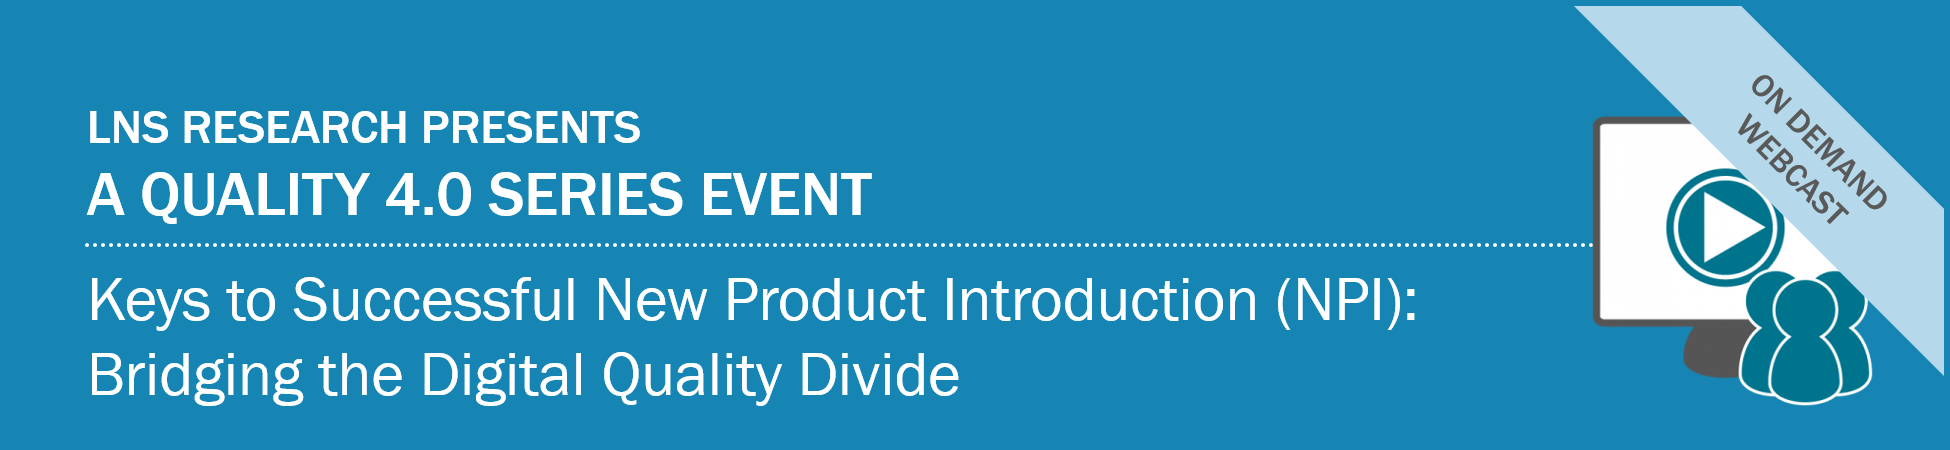 Webcast: Keys to Successful New Product Introduction (NPI): Bridging the Digital Quality Divide